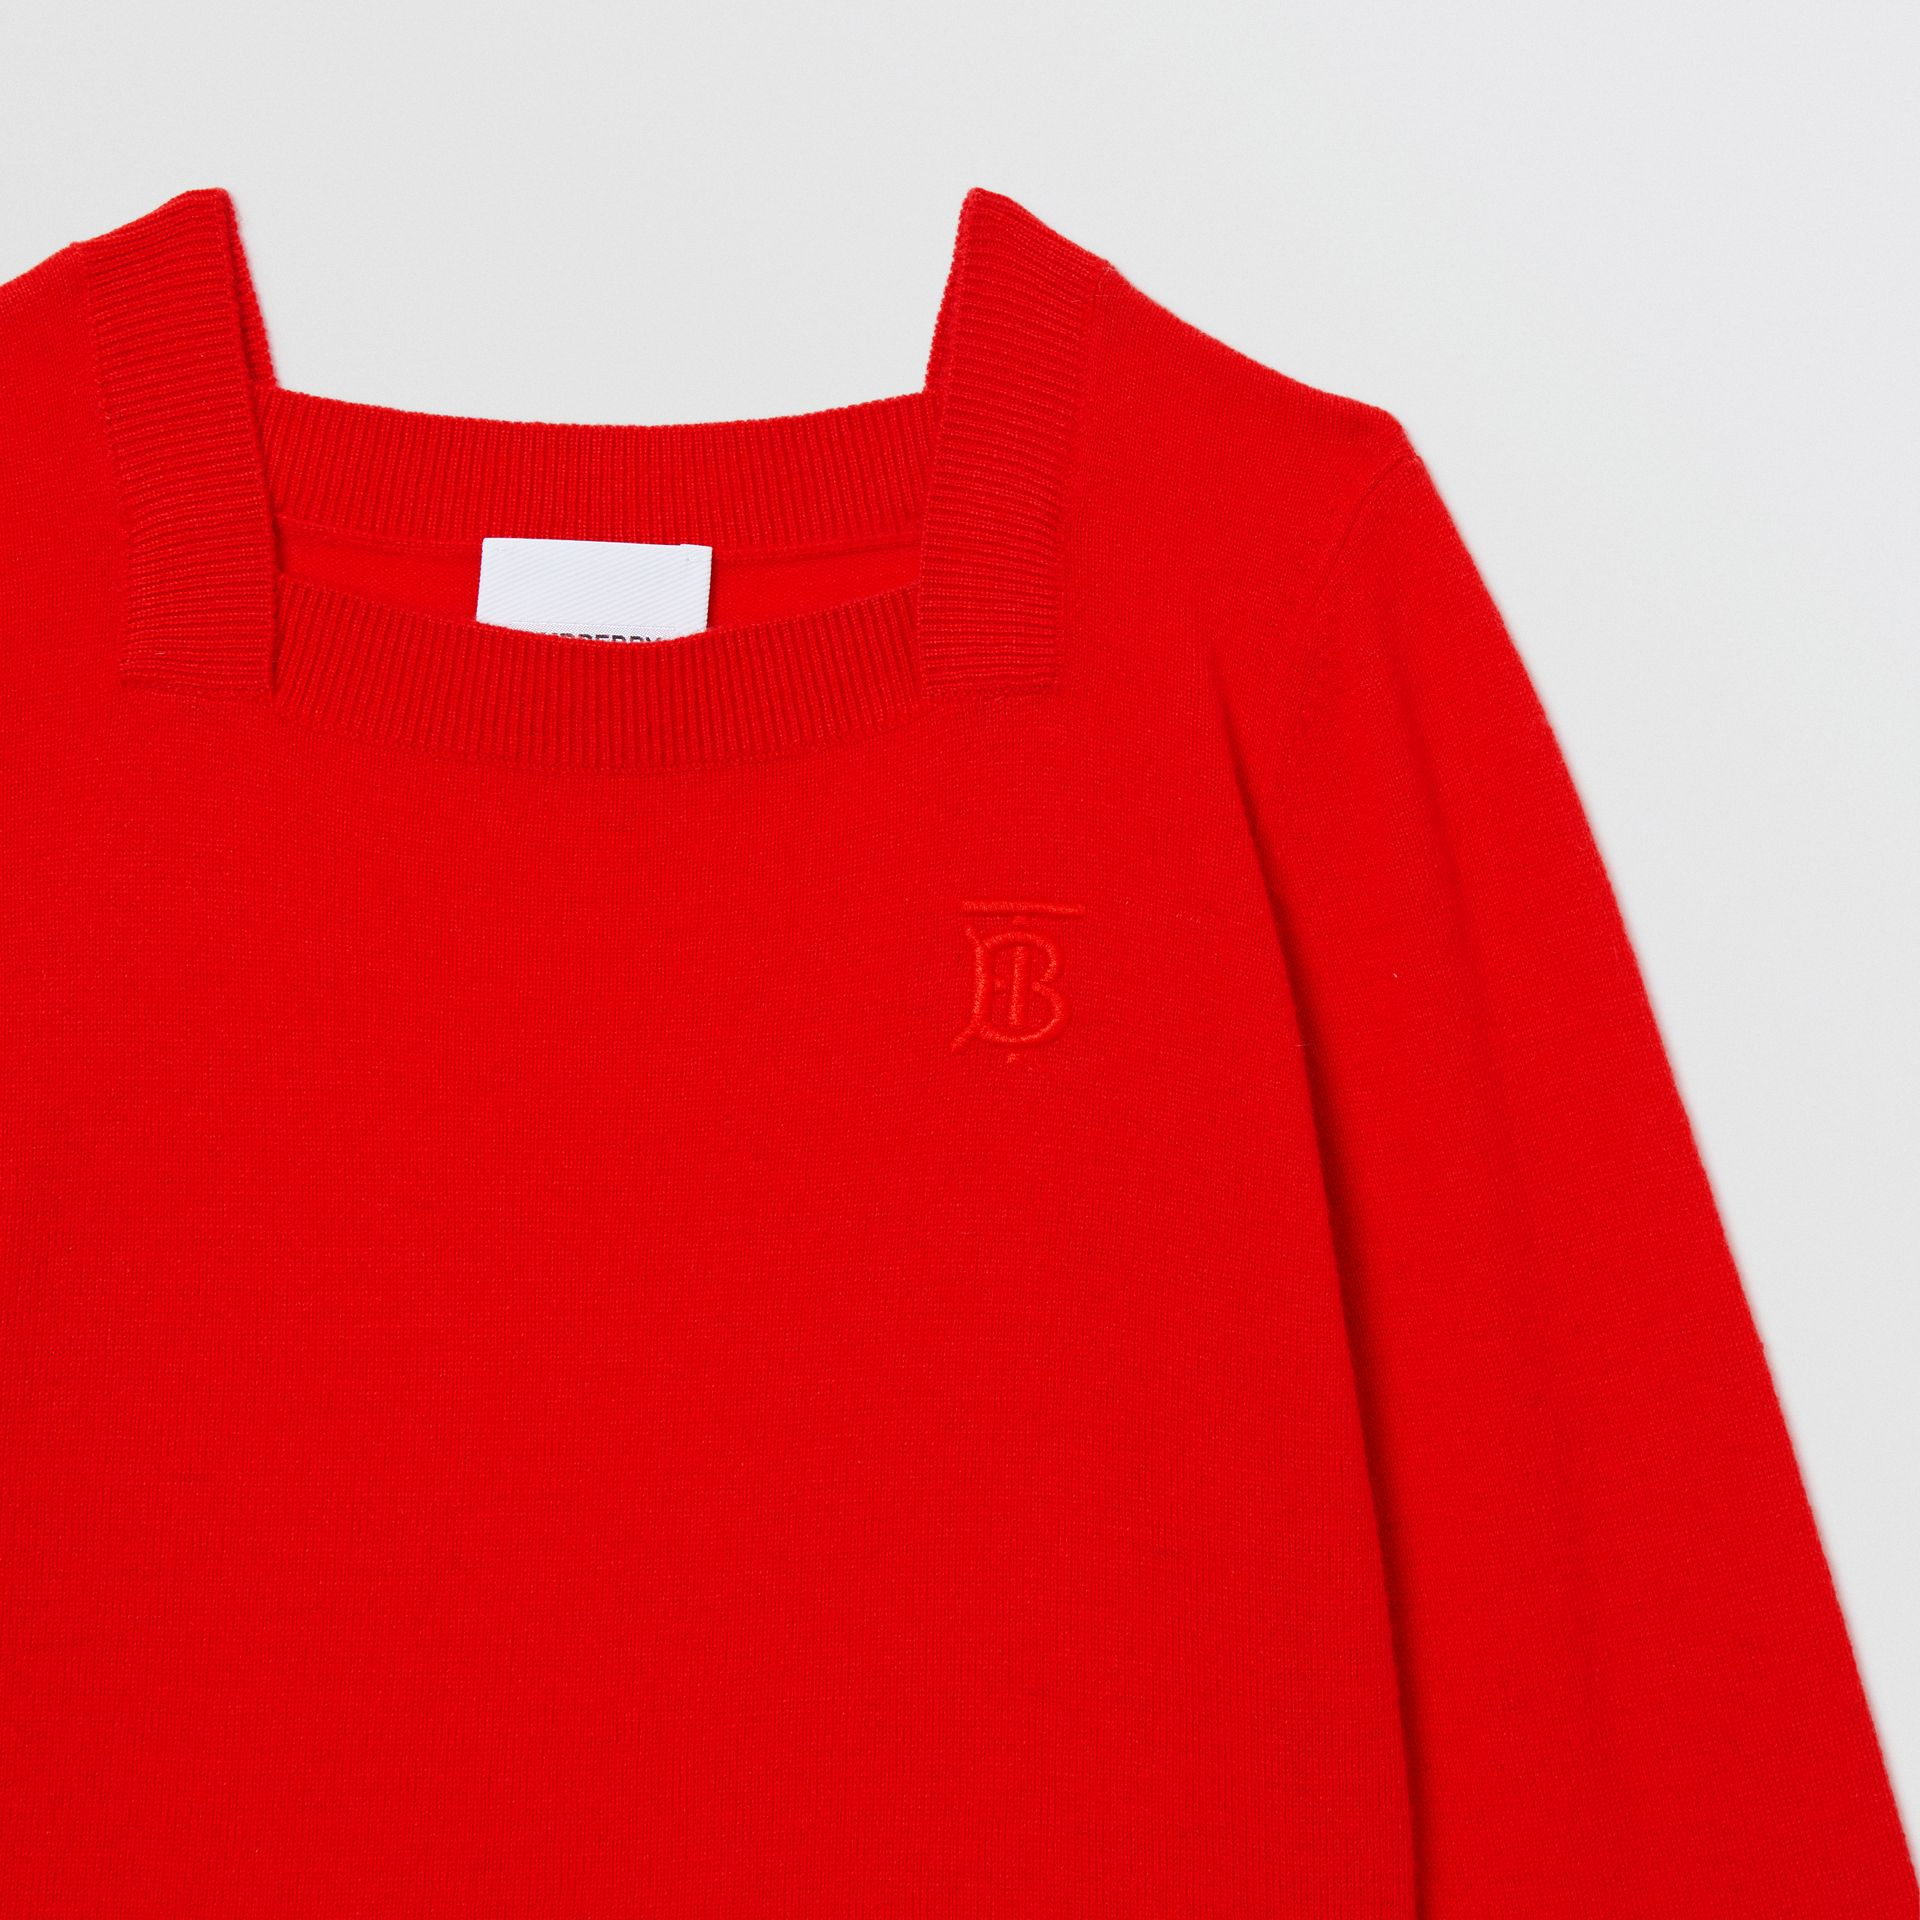 Monogram Motif Cashmere Sweater in Bright Red | Burberry - gallery image 5